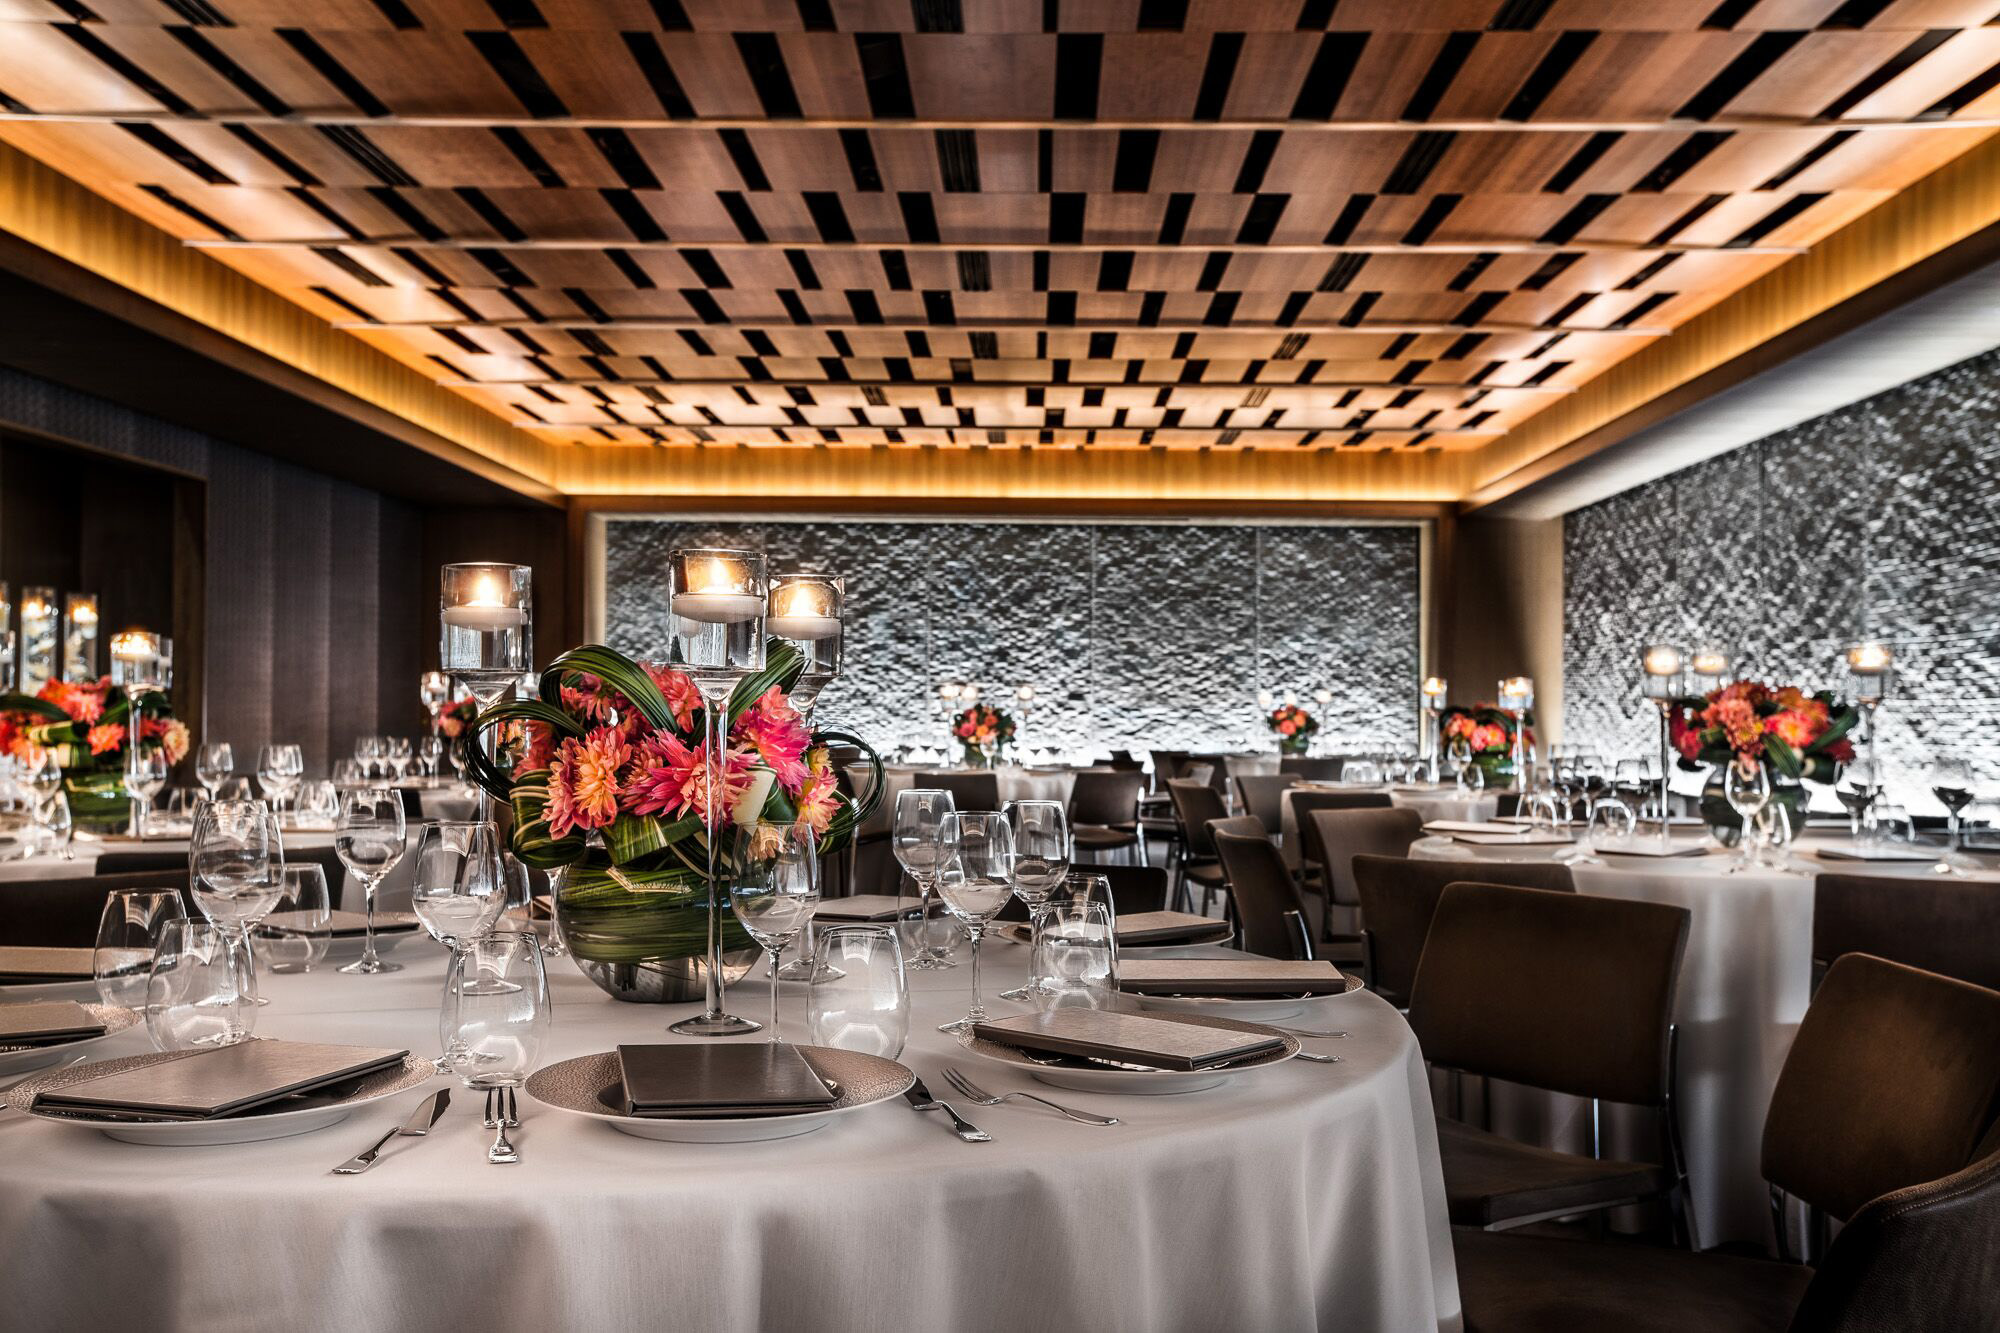 Le Bernadrin in New York City, New York